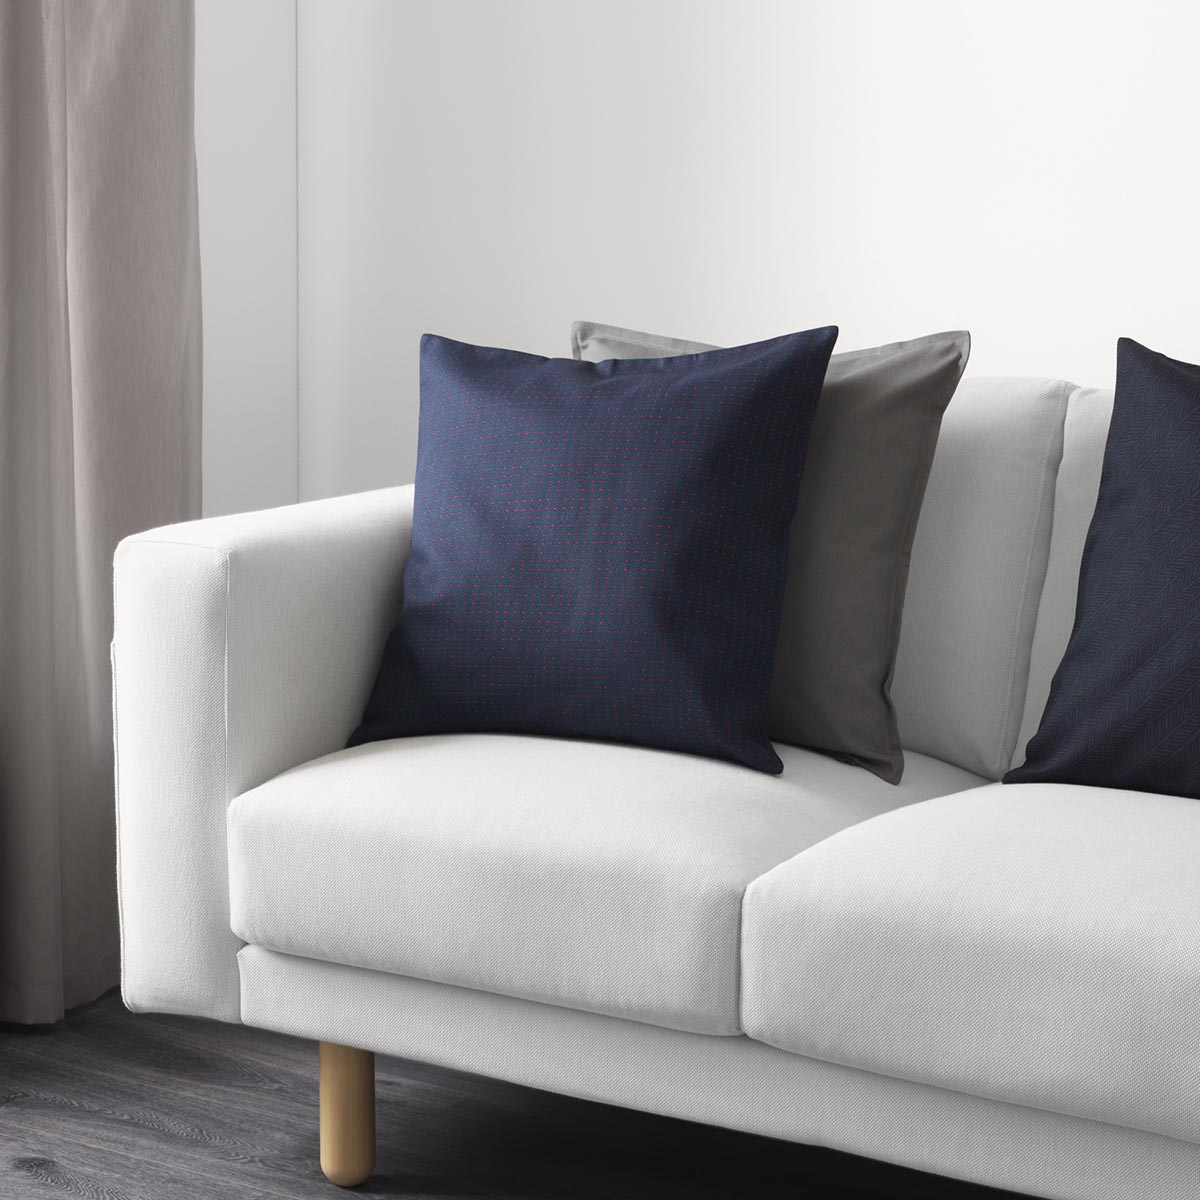 Ypperlig Ikea Sofa First Look Ikea X Hay Ypperlig Collection Cate St Hill